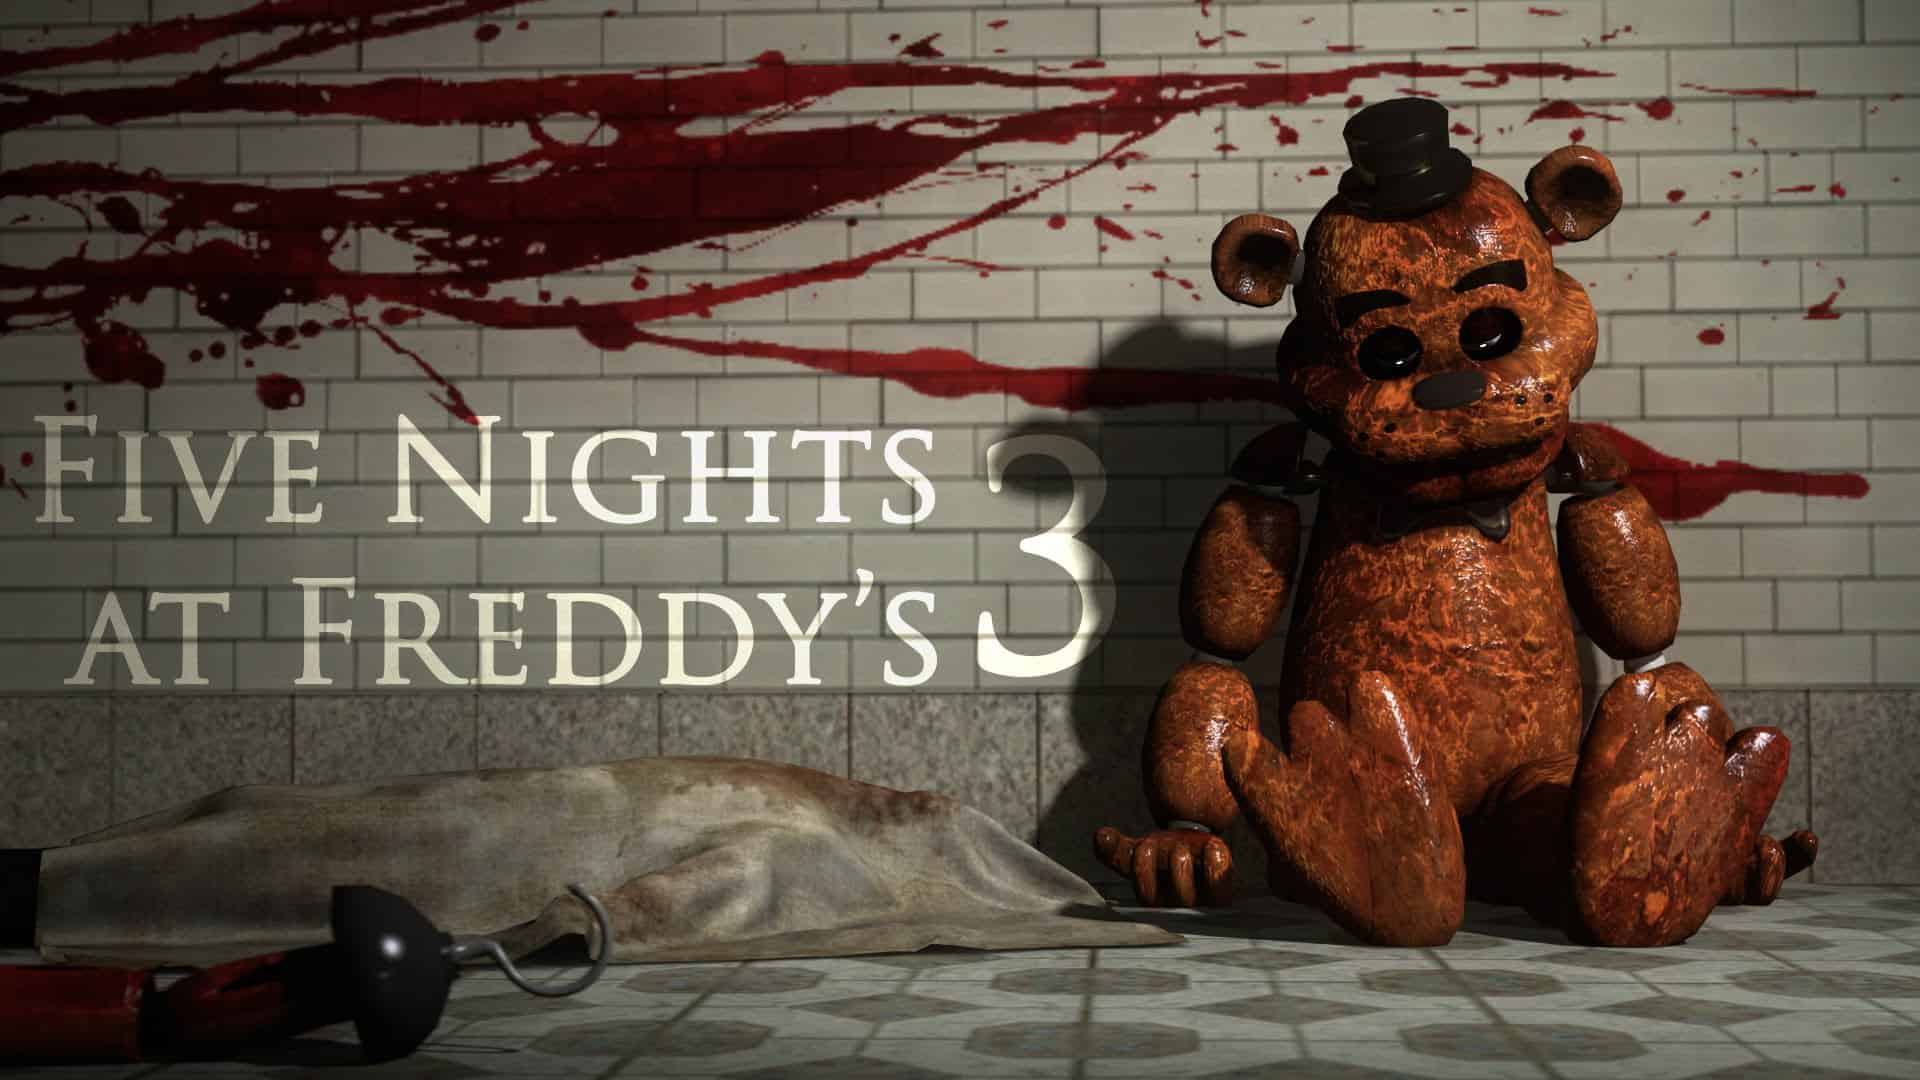 5 nights at freddys demo play now online